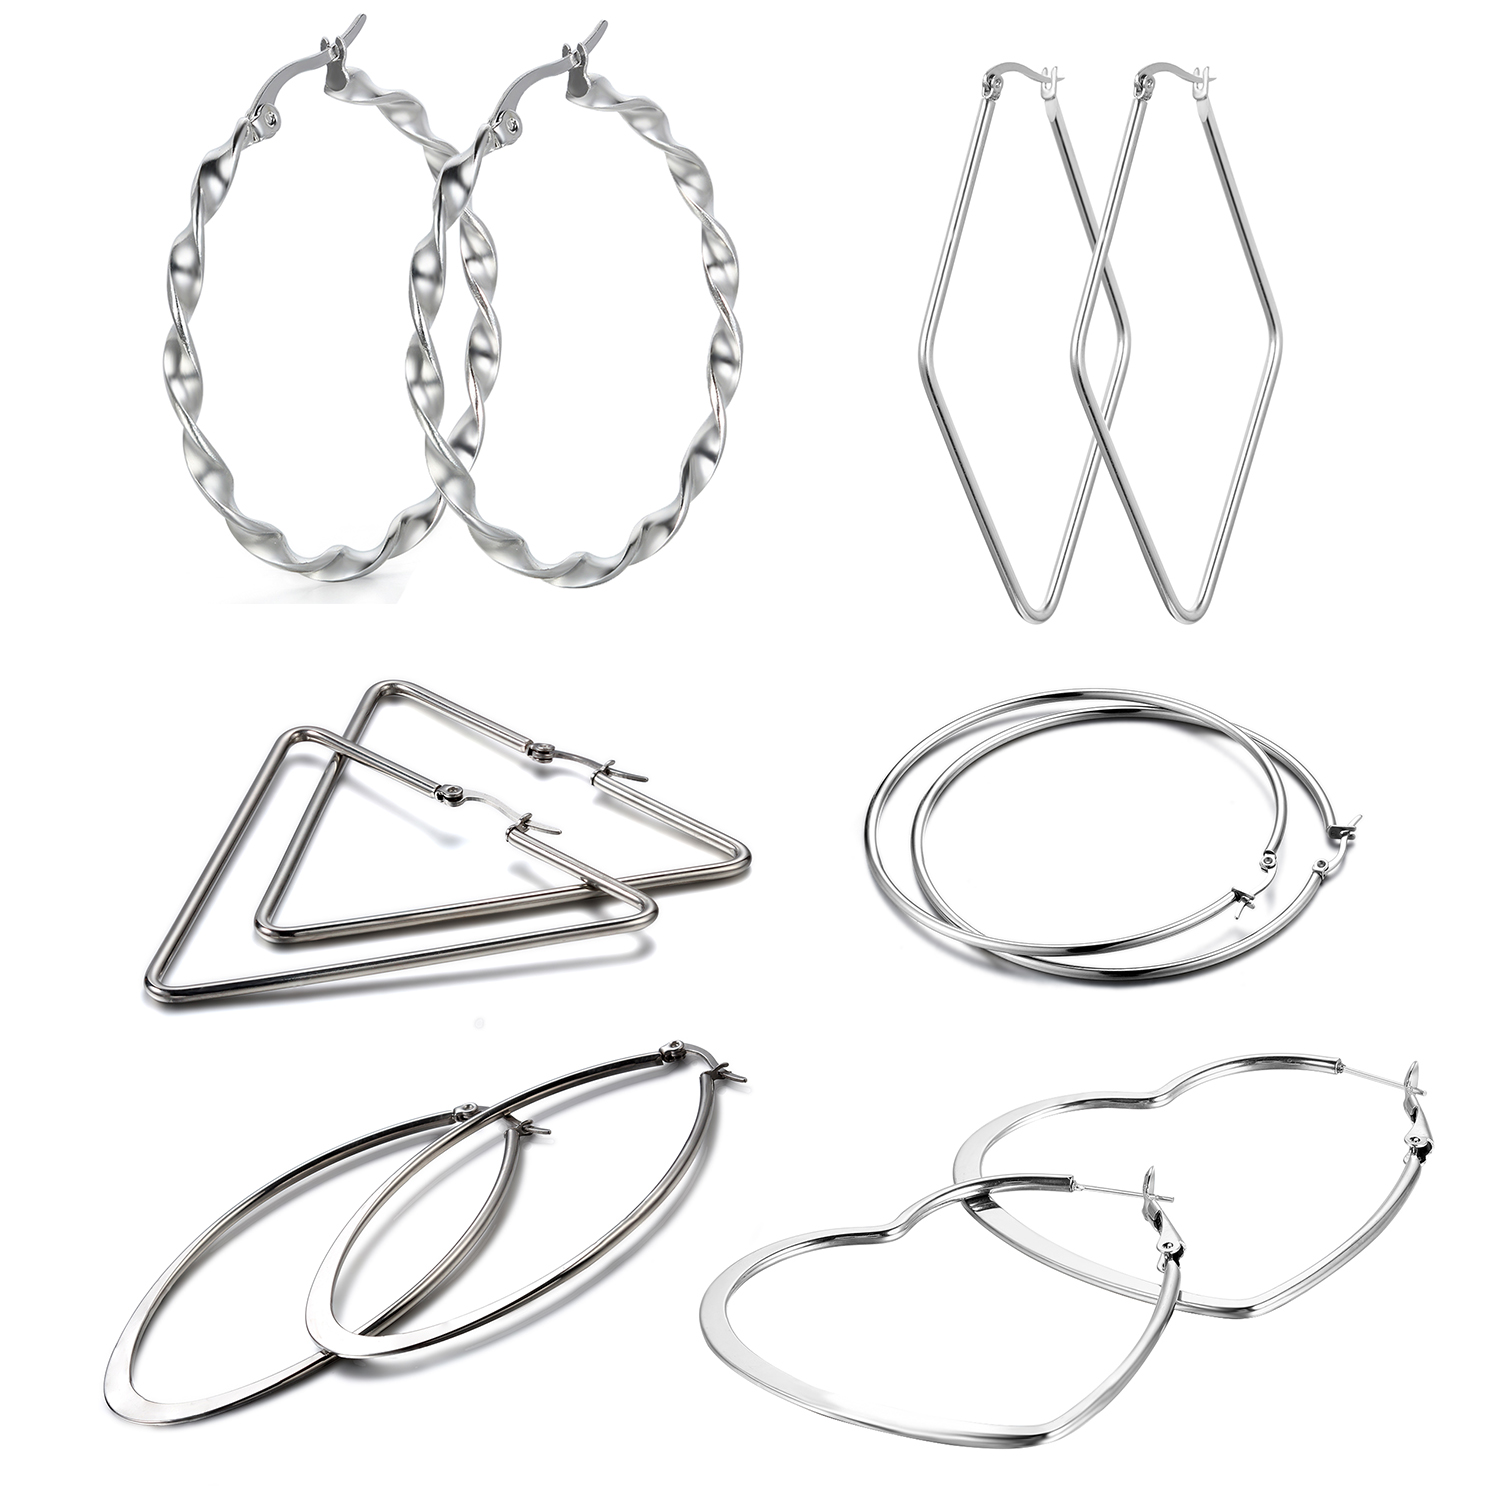 Aroncent 6 Pairs Women Silver Tone Stainless Steel Large Hoop Earrings Gift Set